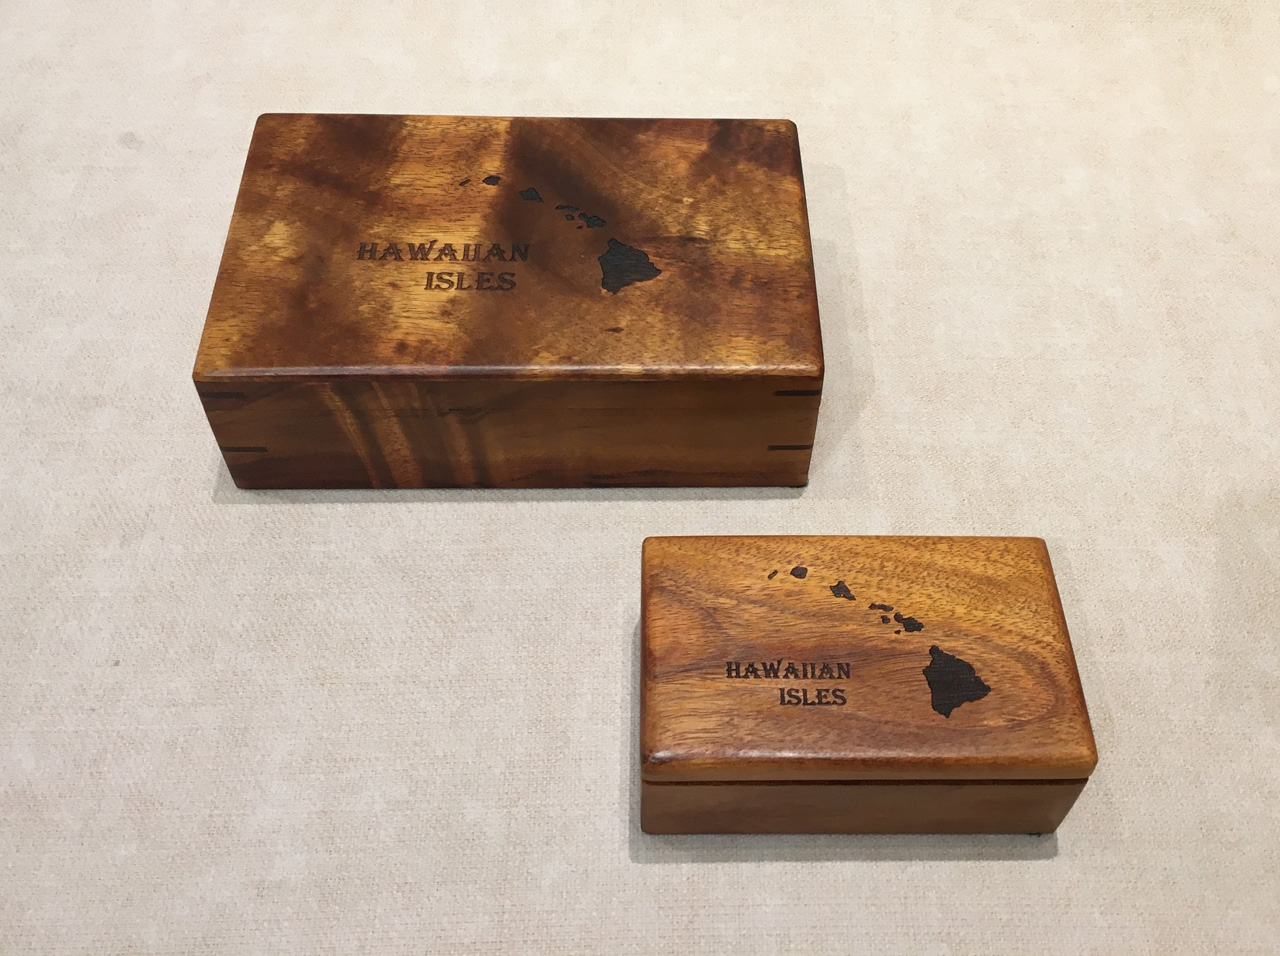 Un-hinged Hawaiin Islands Engraved Box